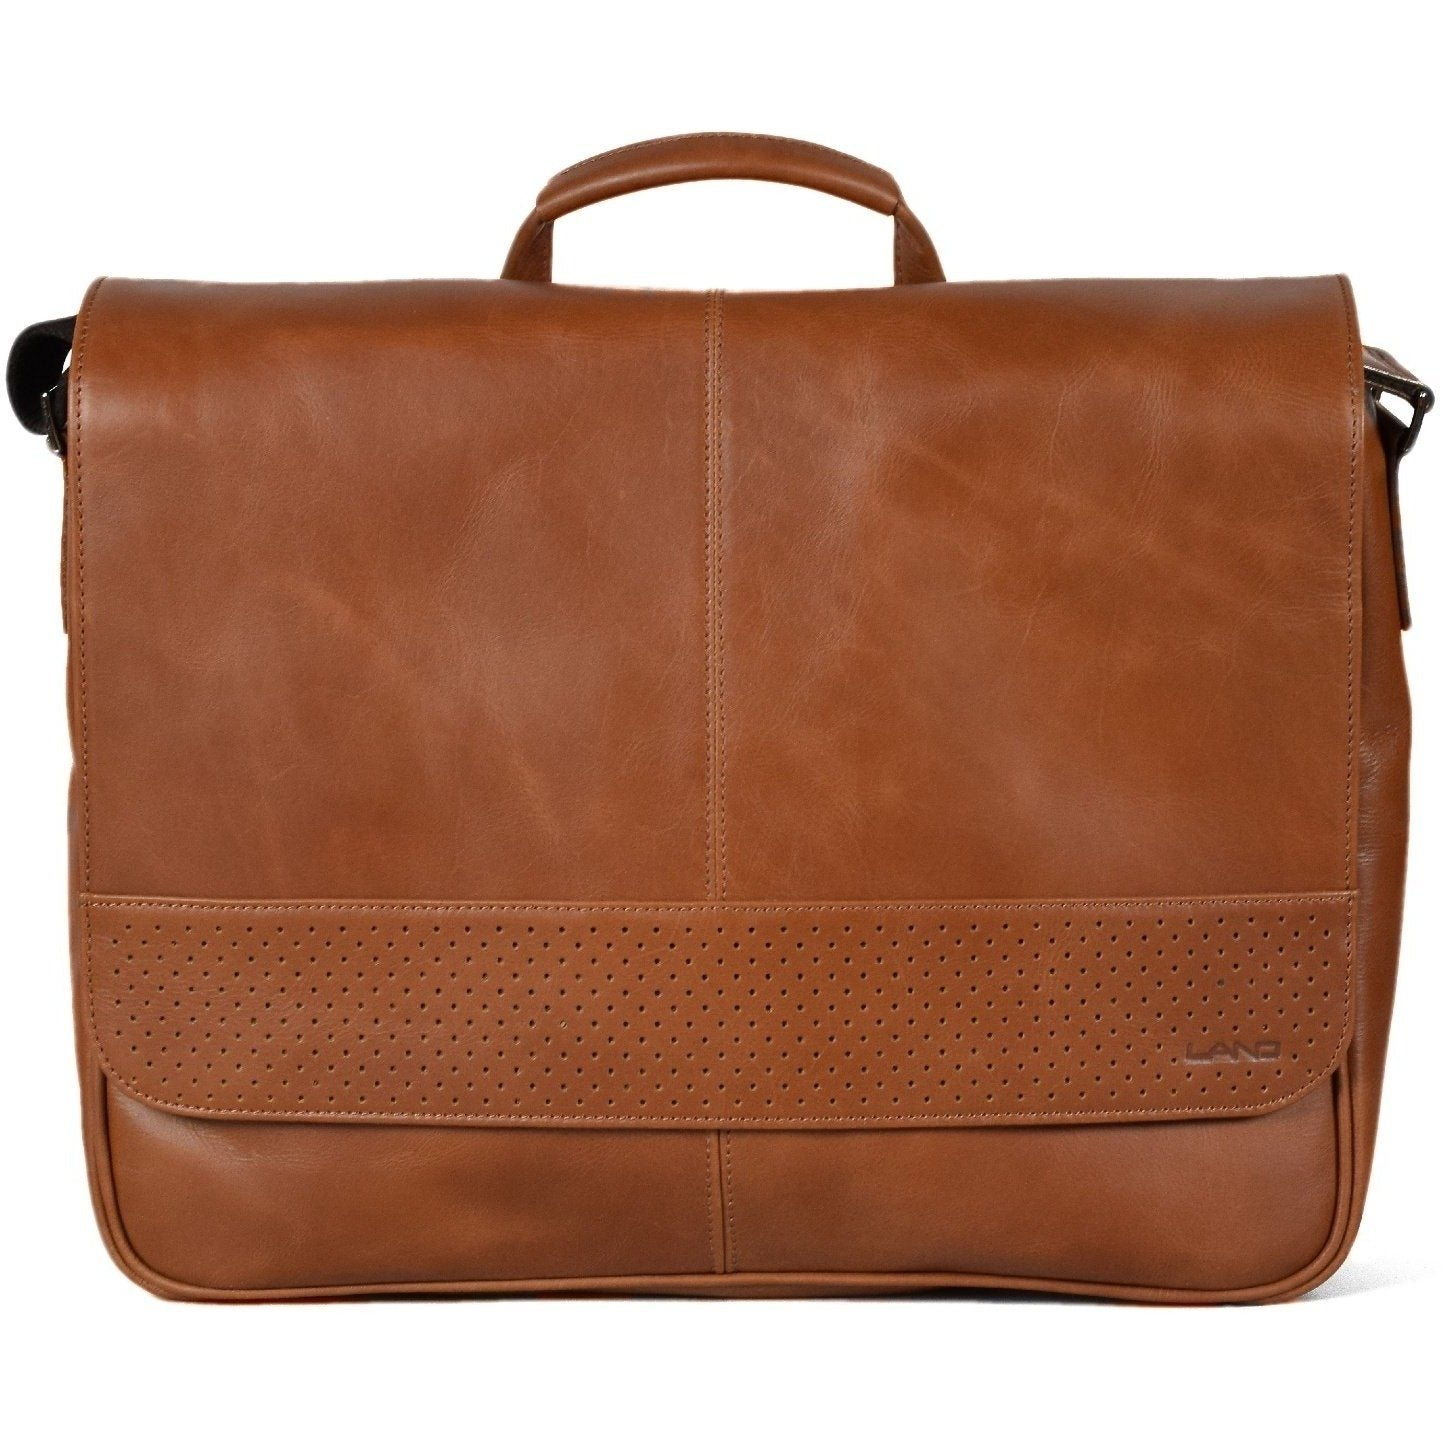 DuPont Logan Messenger, Crossover Bag | LAND Leather